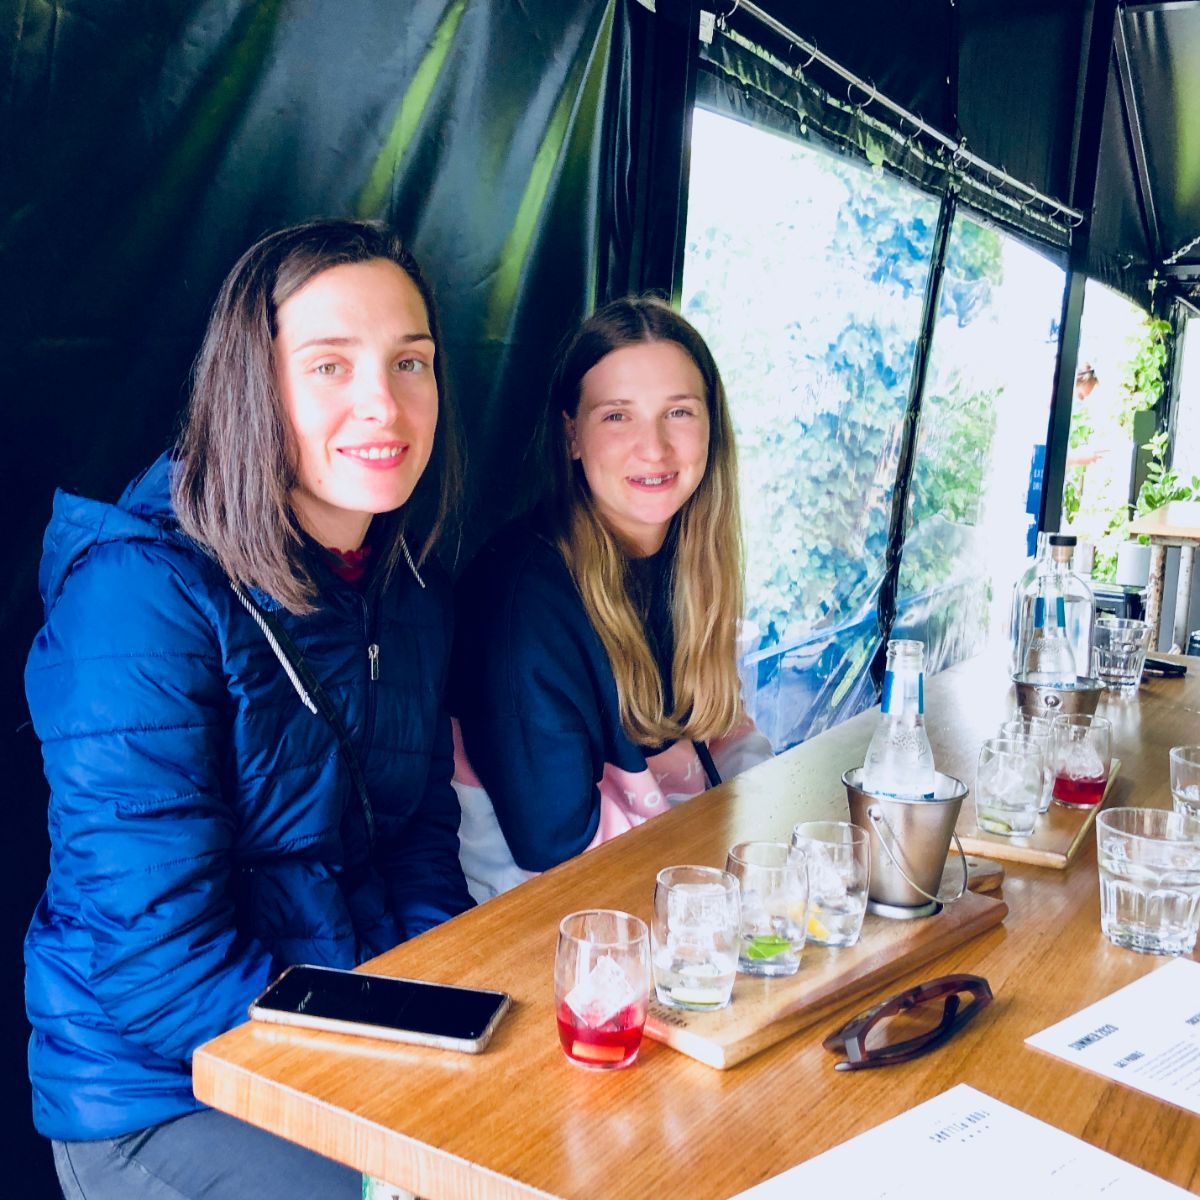 four pillars gin a must on your dogfriendly wine tour